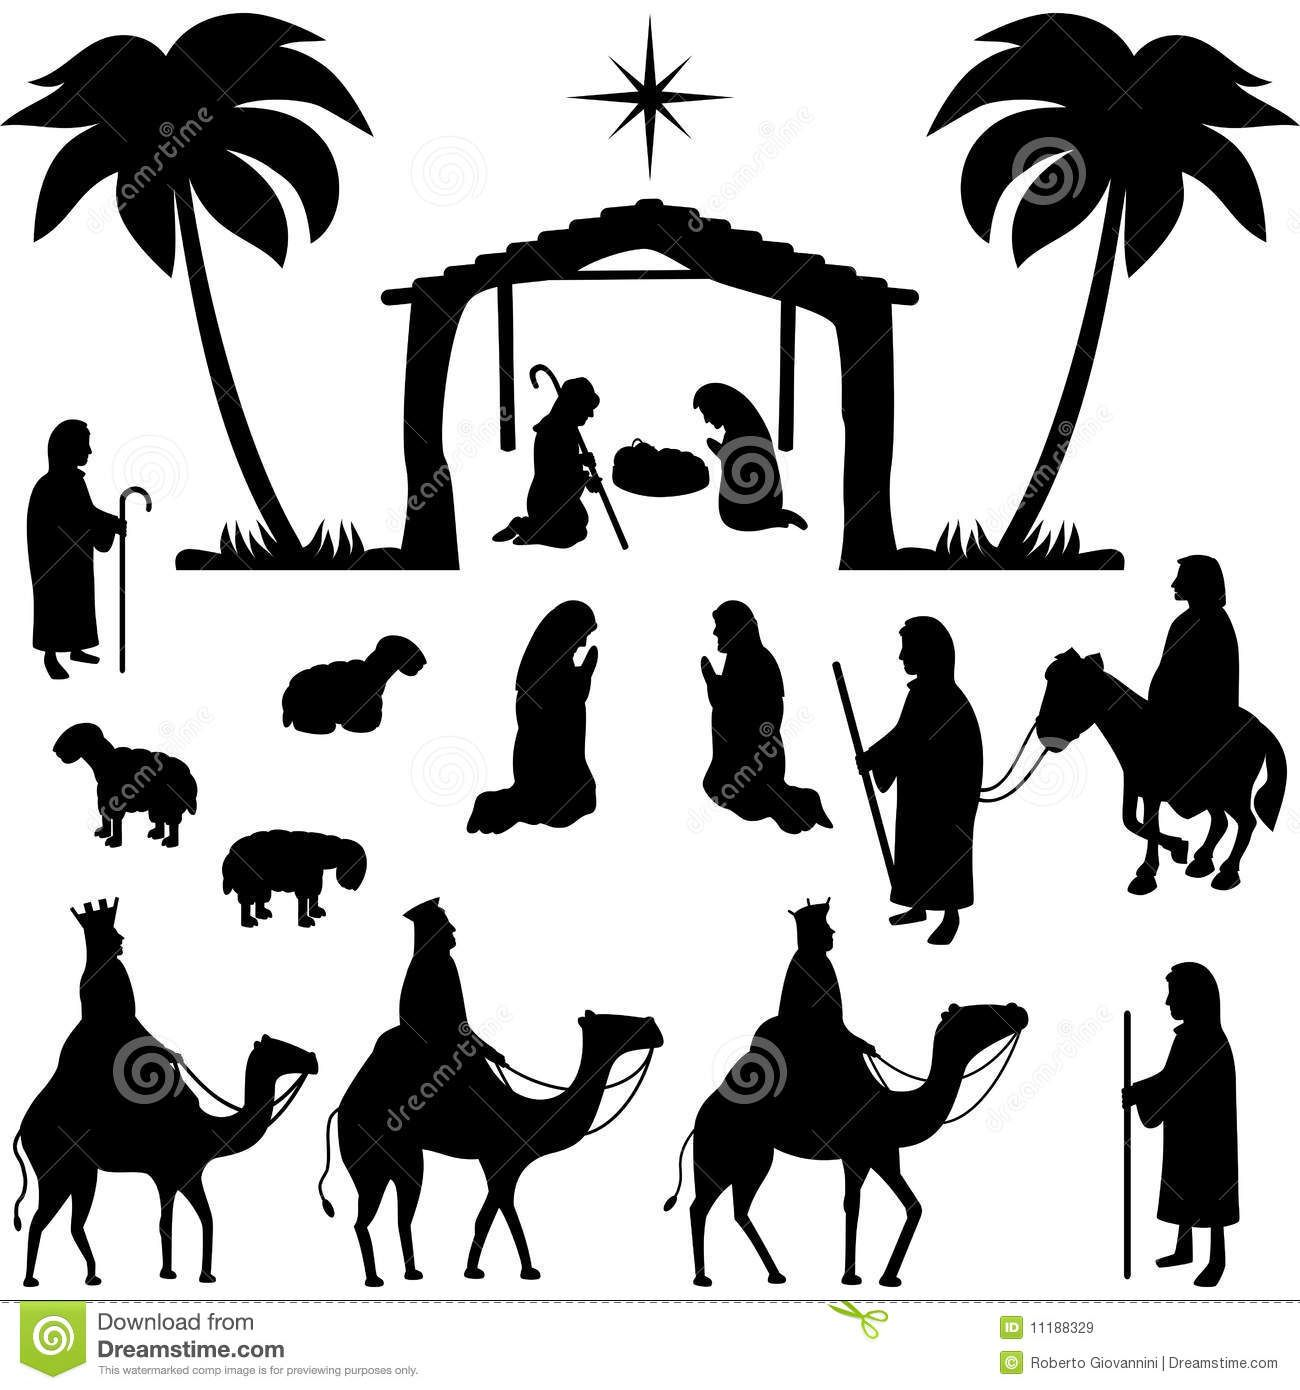 medium resolution of nativity silhouettes collection download from over 27 million high quality stock photos images vectors sign up for free today image 11188329